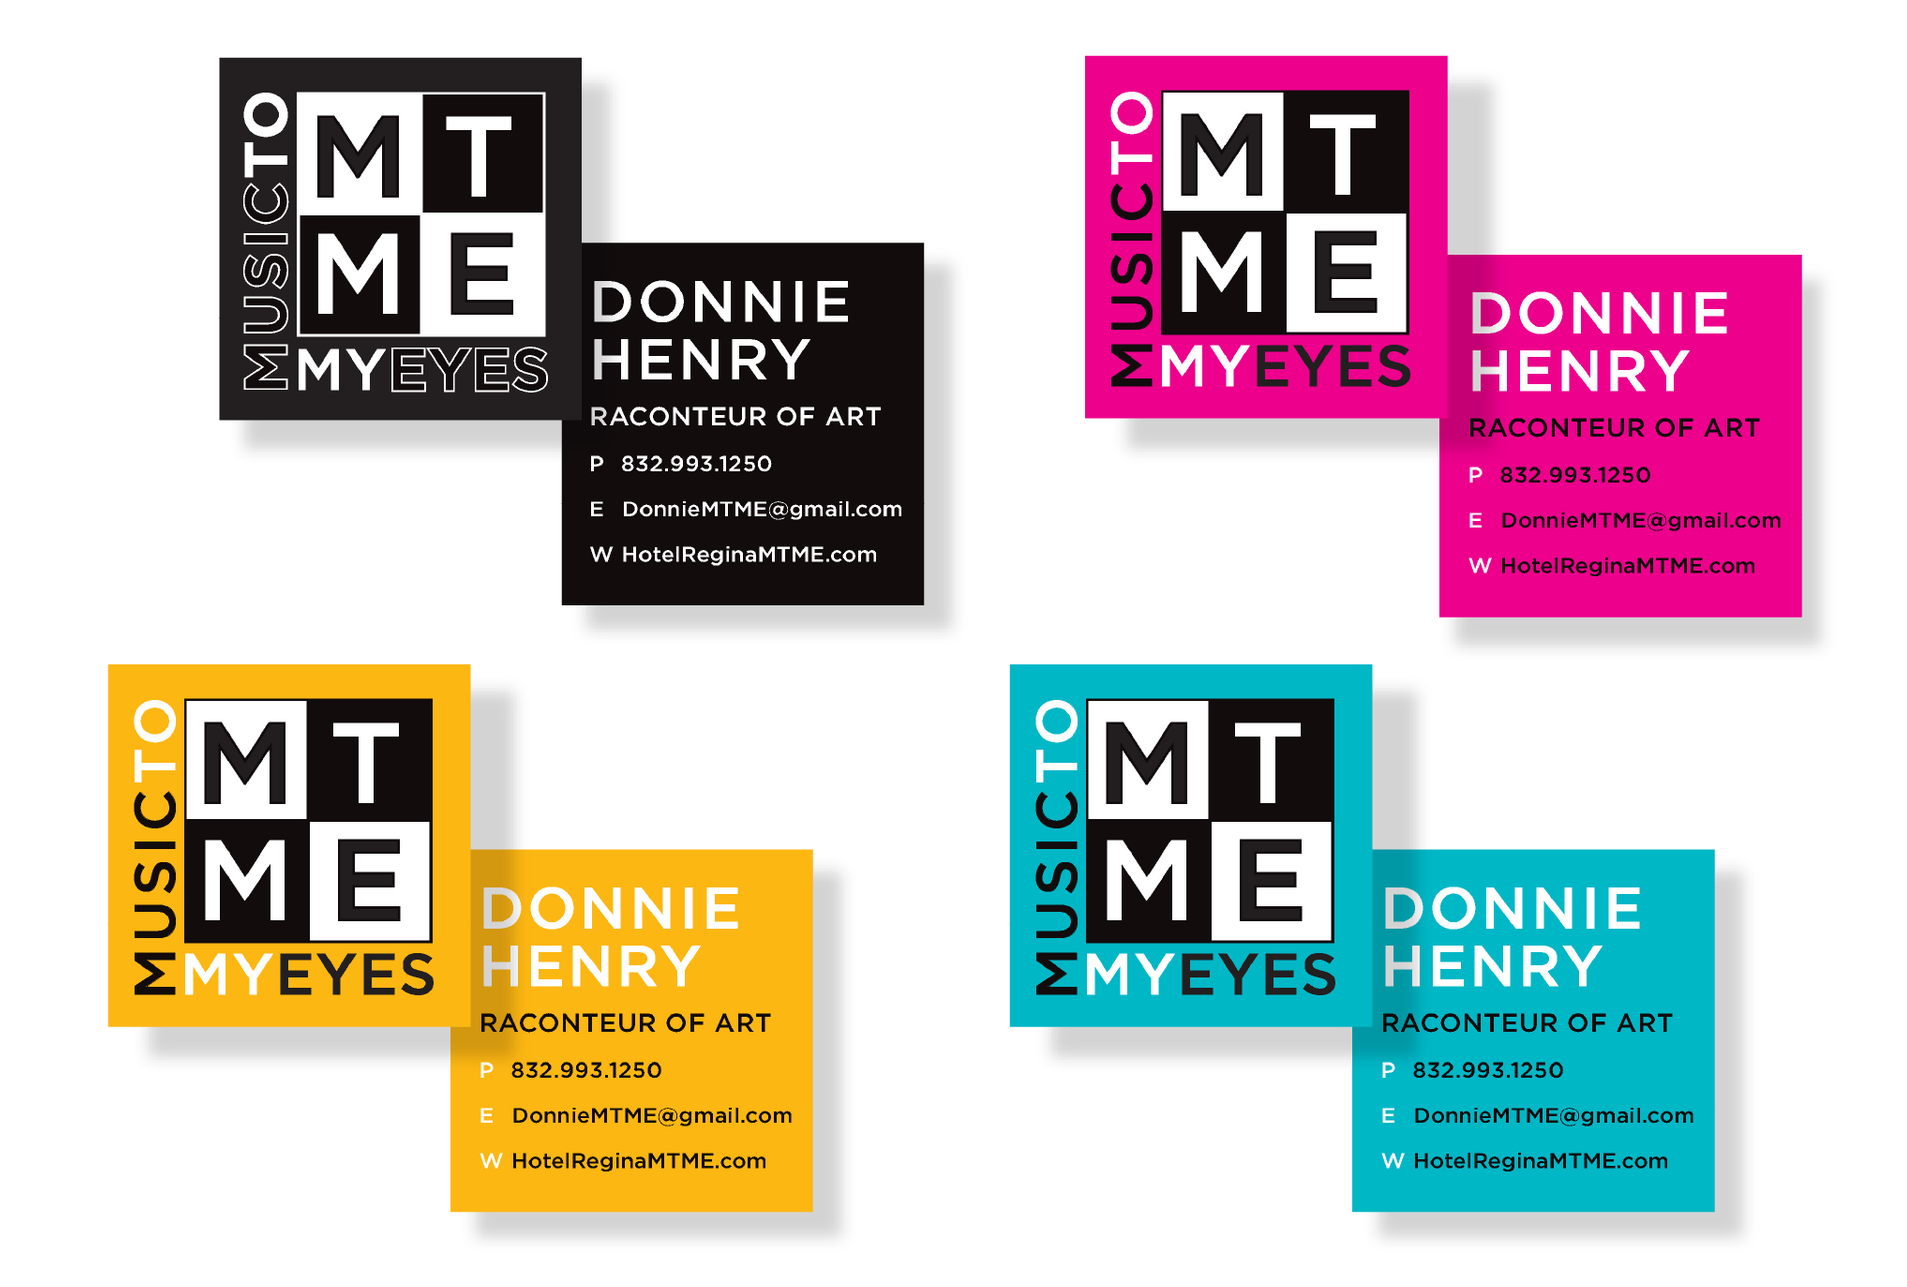 Each person receives multiple sets of business cards with different colors. This allows the MTME brand to feel larger and lively, having more than just one color.